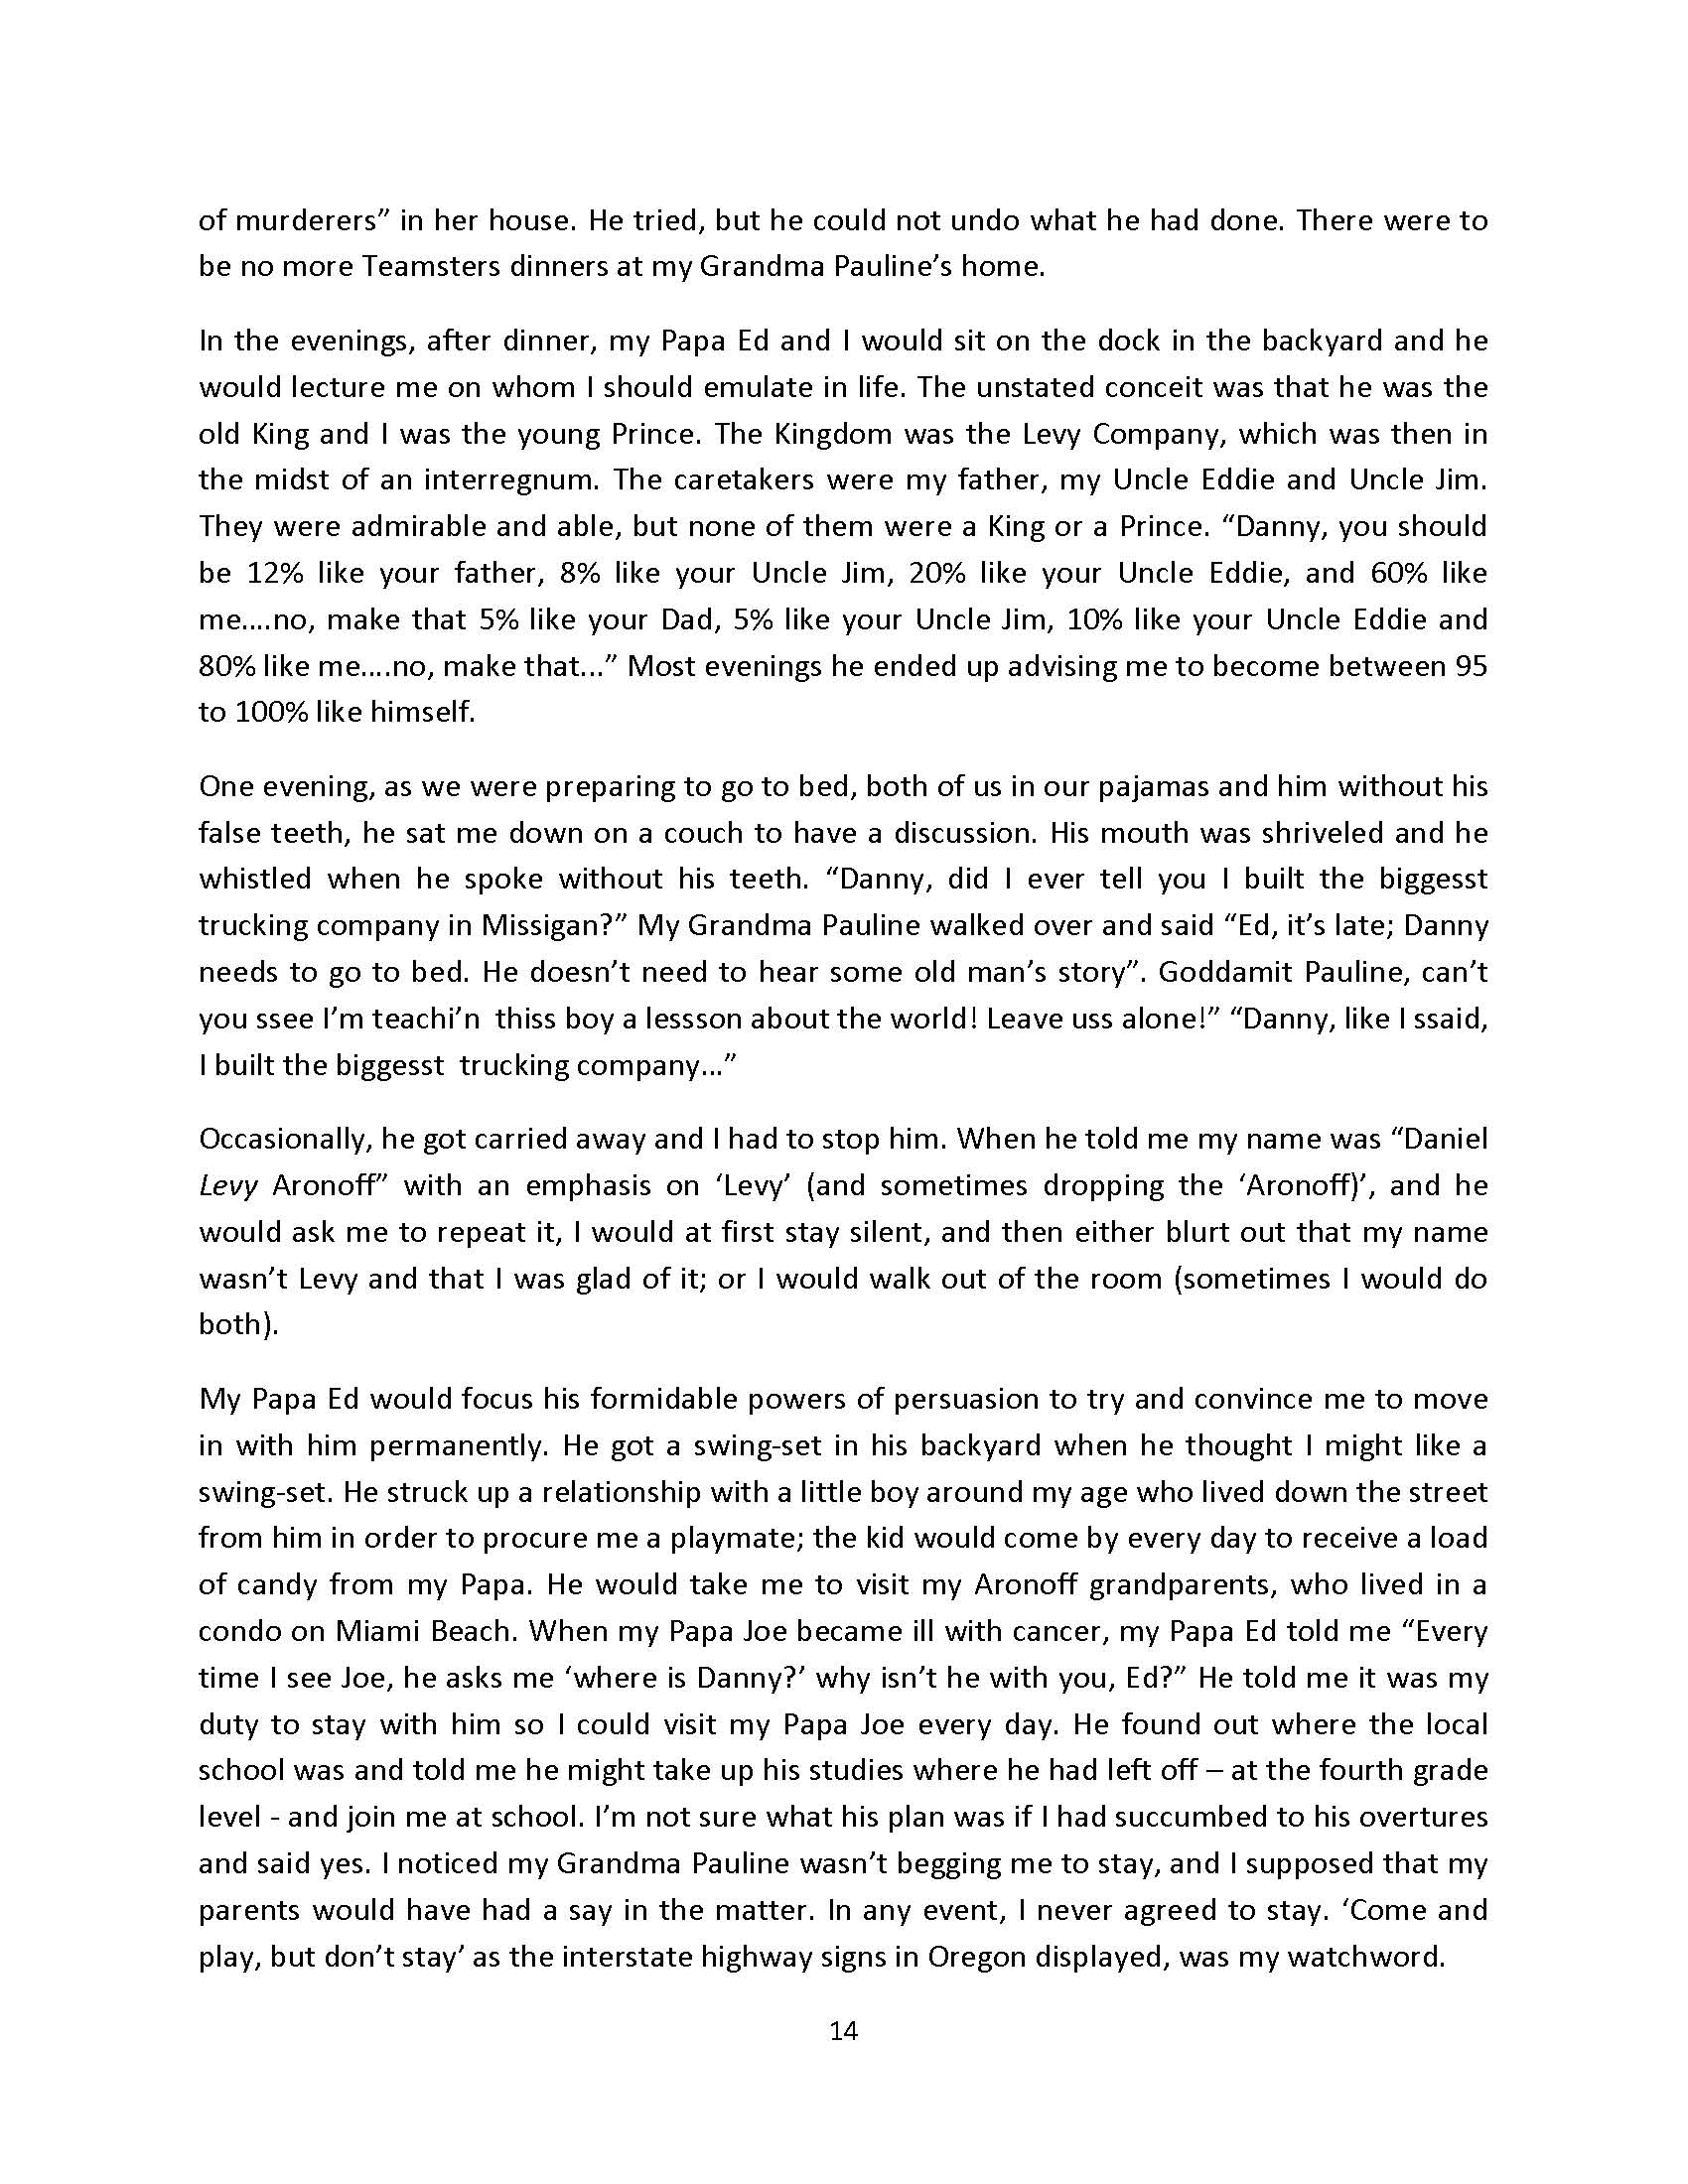 Papa Ed Stories -excerpts_Page_14.jpg